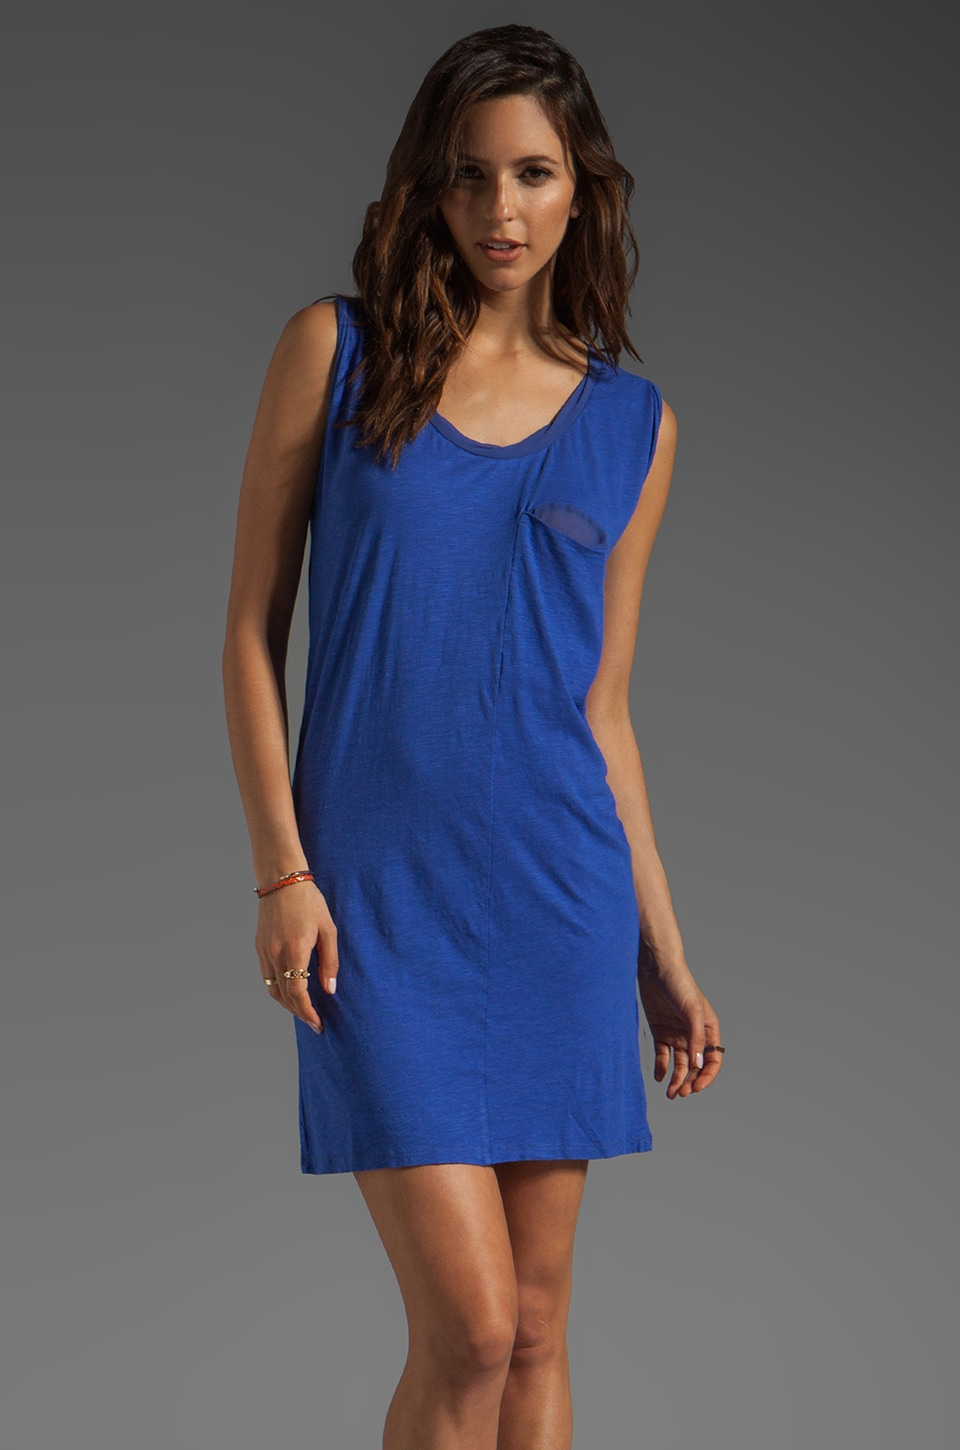 American Vintage Jacksonville Tank Dress in Indigo